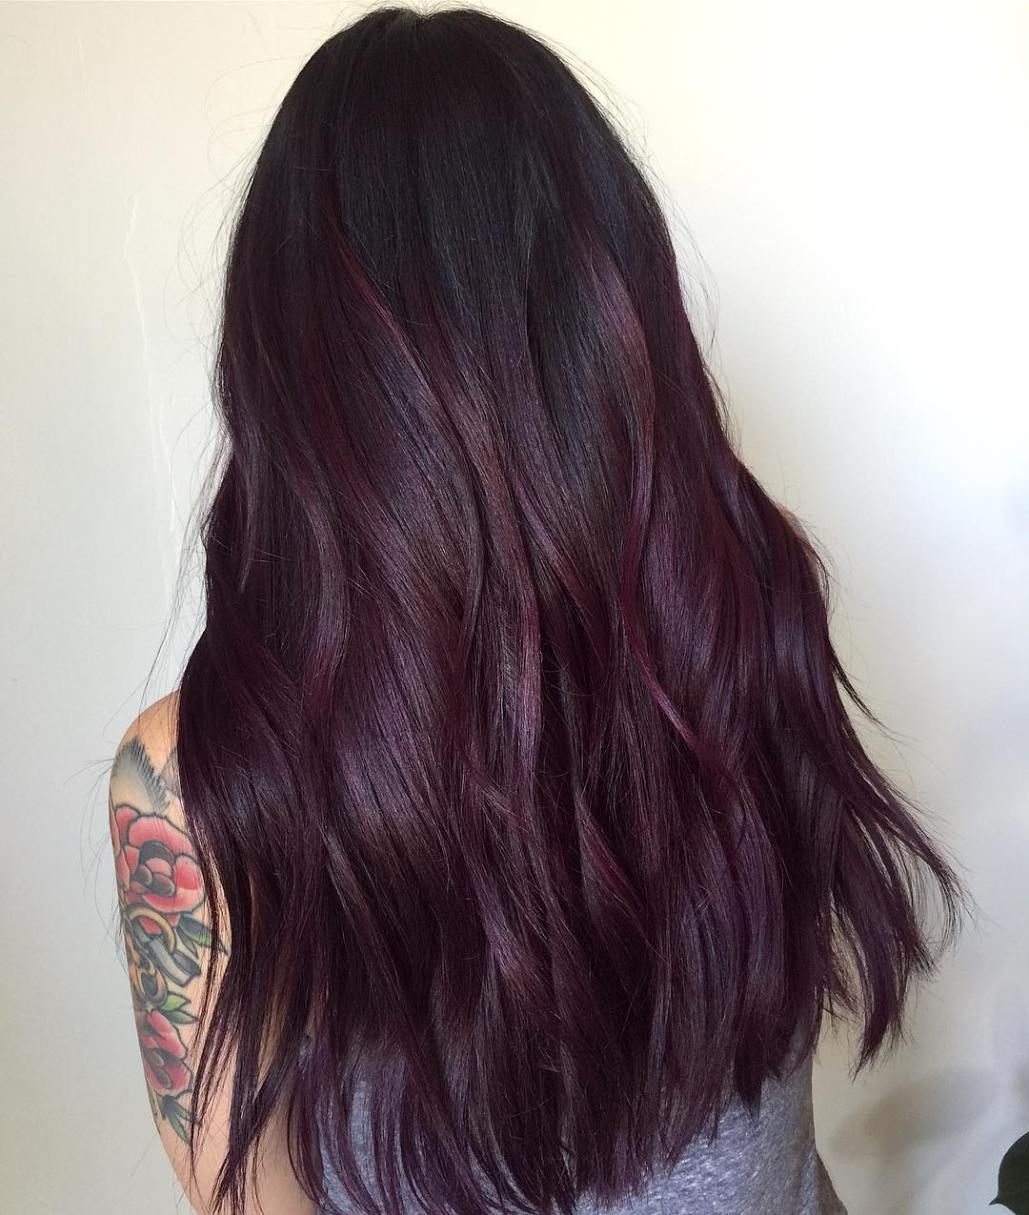 Plum Hair Color Ideas for Your Next Makeover  Hair coloring